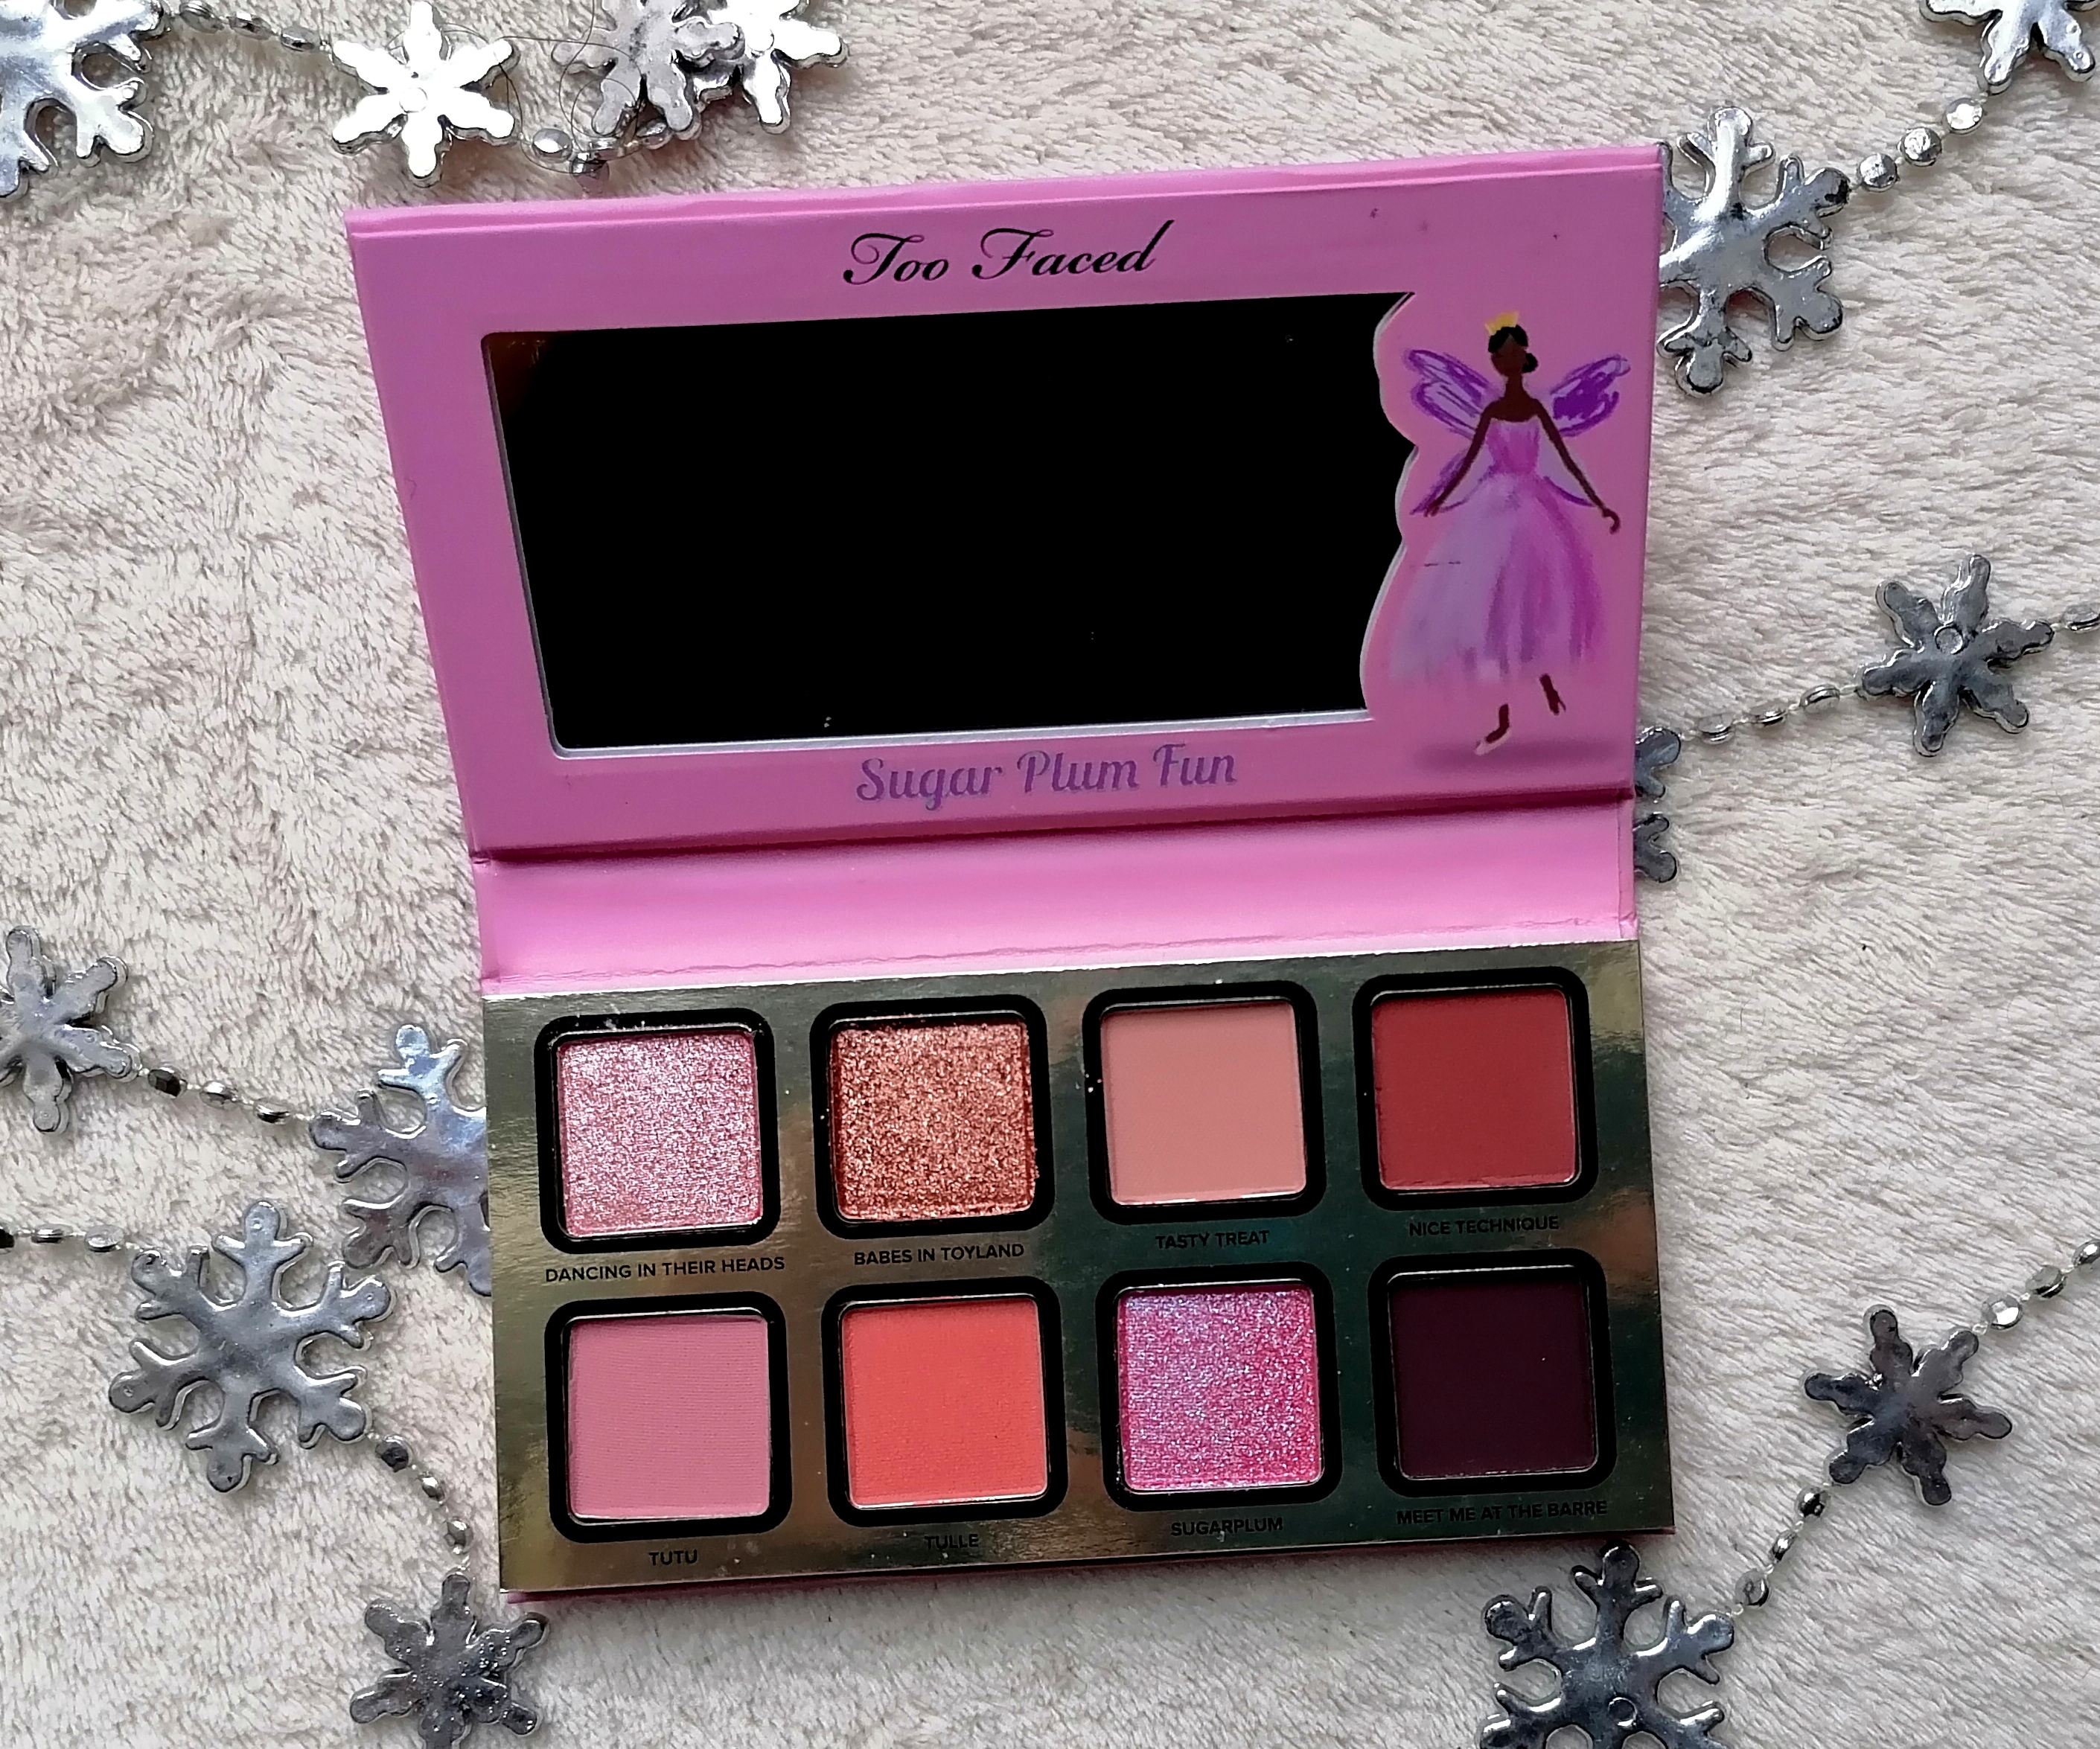 Sugar Plum Fun  Make up set de Too Faced! (Noël 2020)